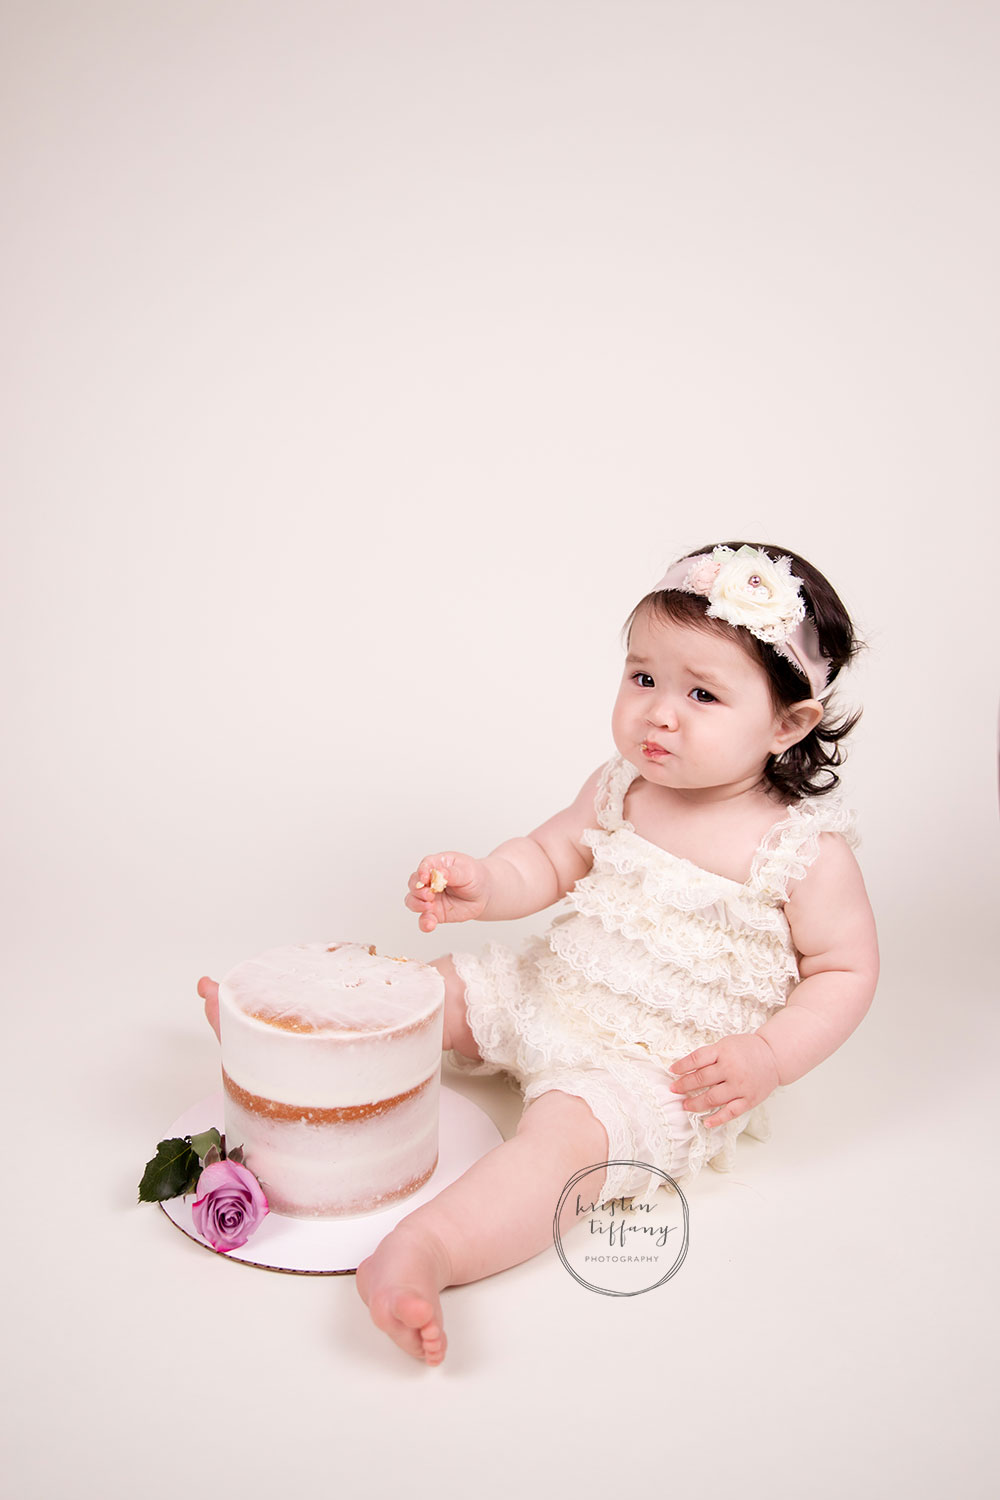 a photo of a baby girl at her cake smash photo session